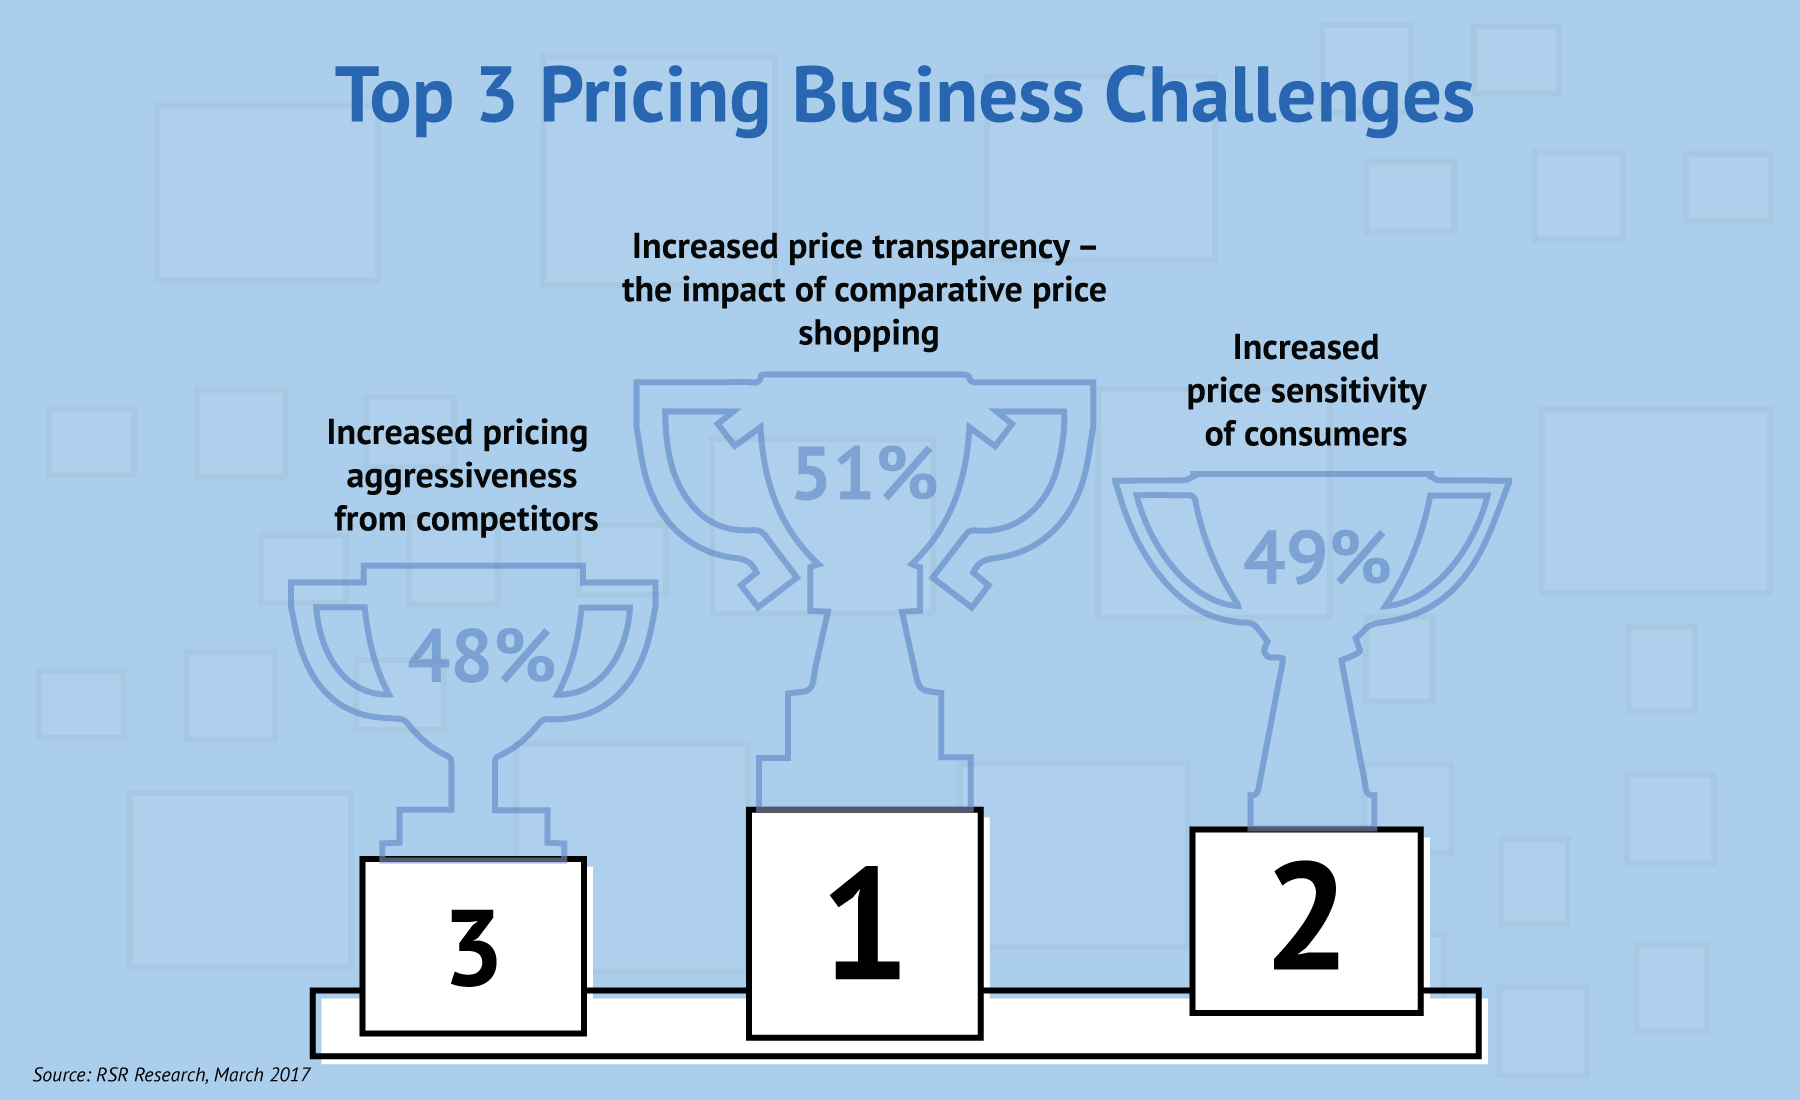 Top 3 Pricing Business Challenges of U.S. retailers are (1) increased pricing aggressiveness from competitors, (2) increased price transparency – the impact of comparative price shopping, and (3) increased price sensitivity of consumers